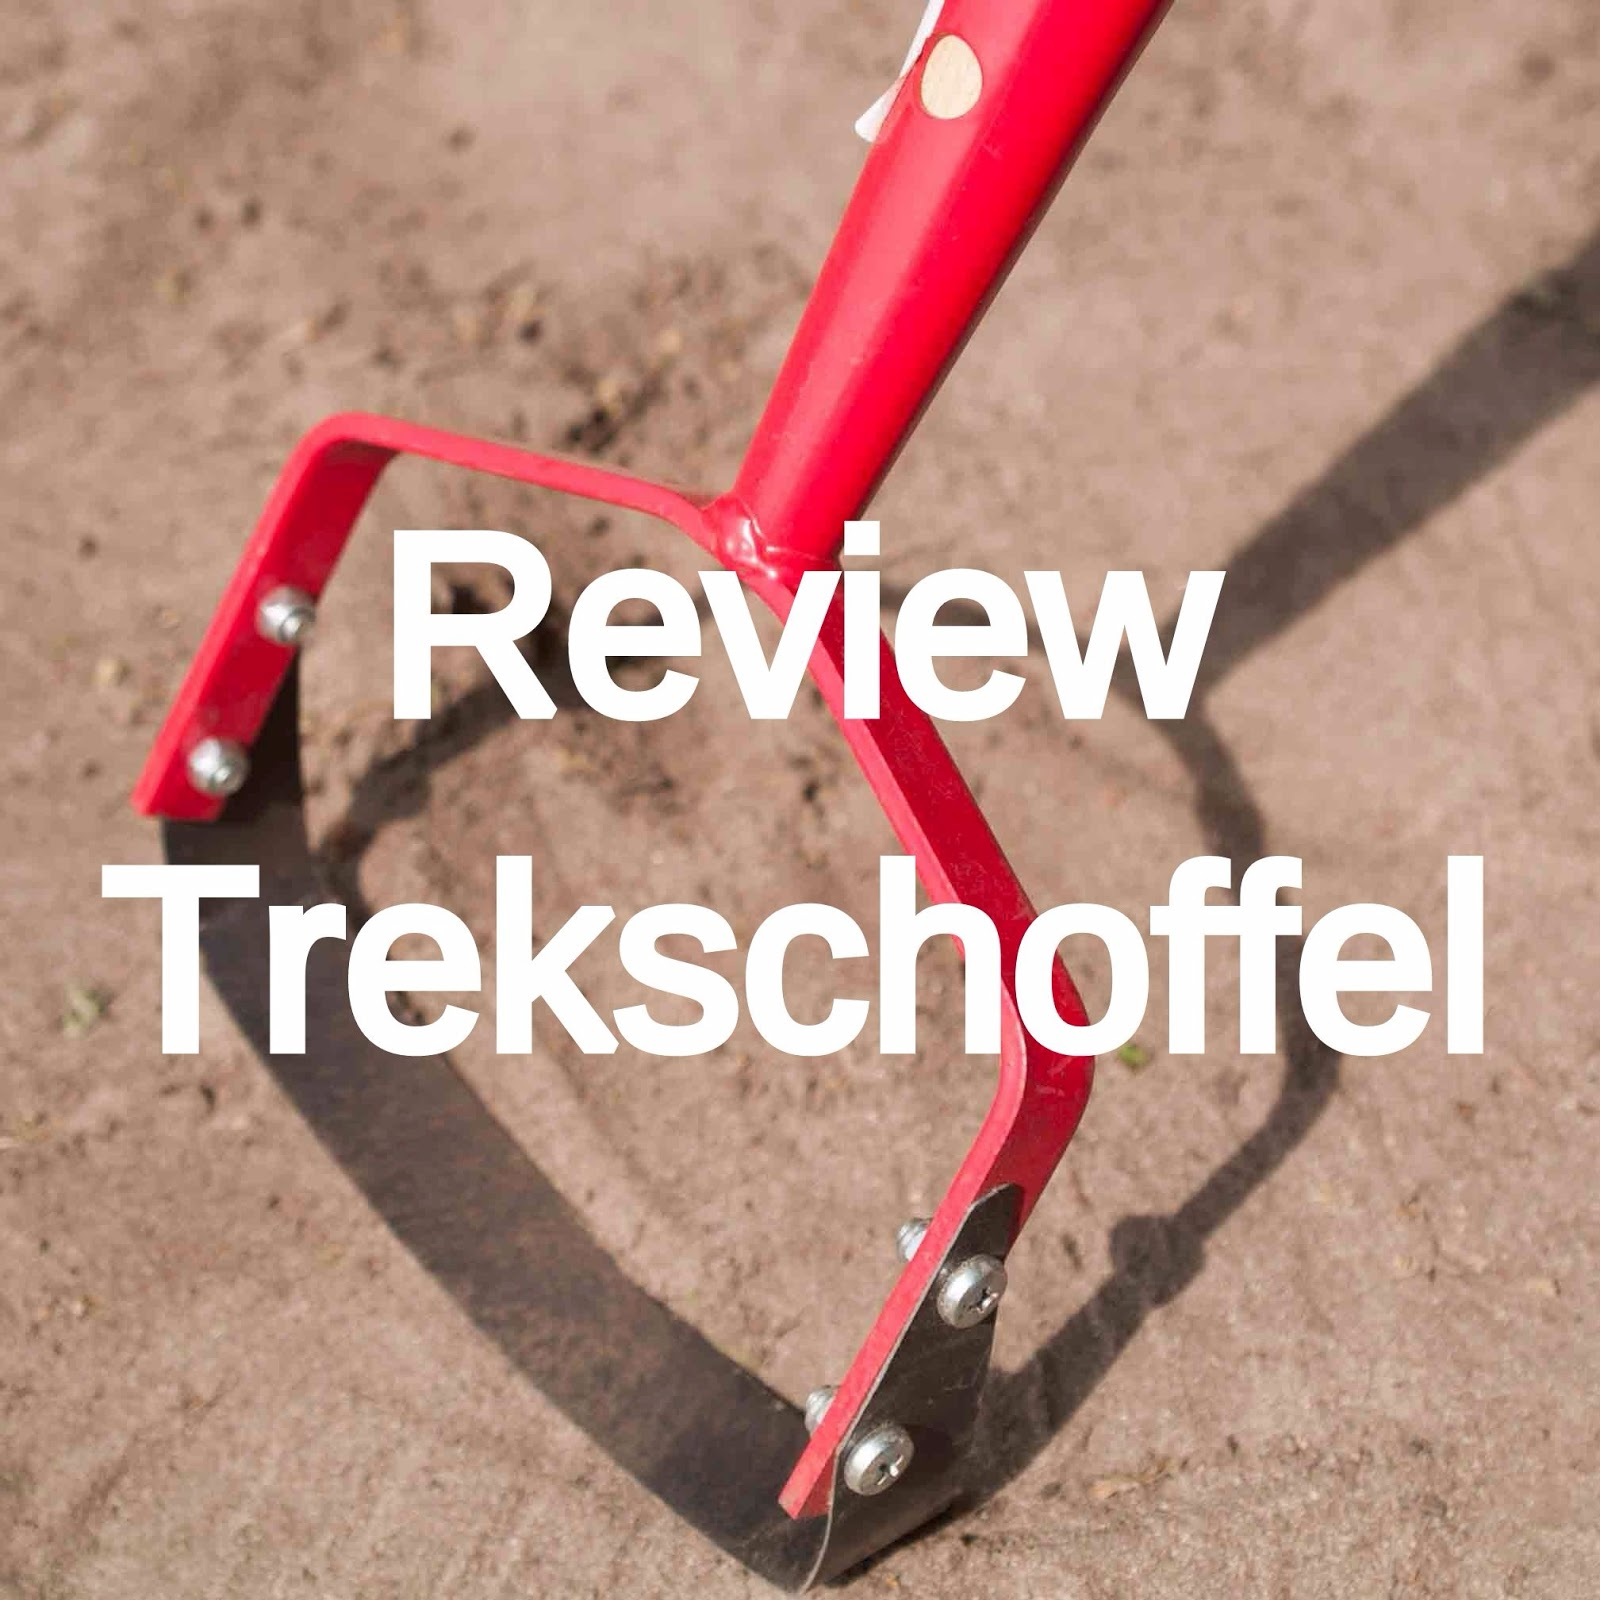 review test trekschoffel polet